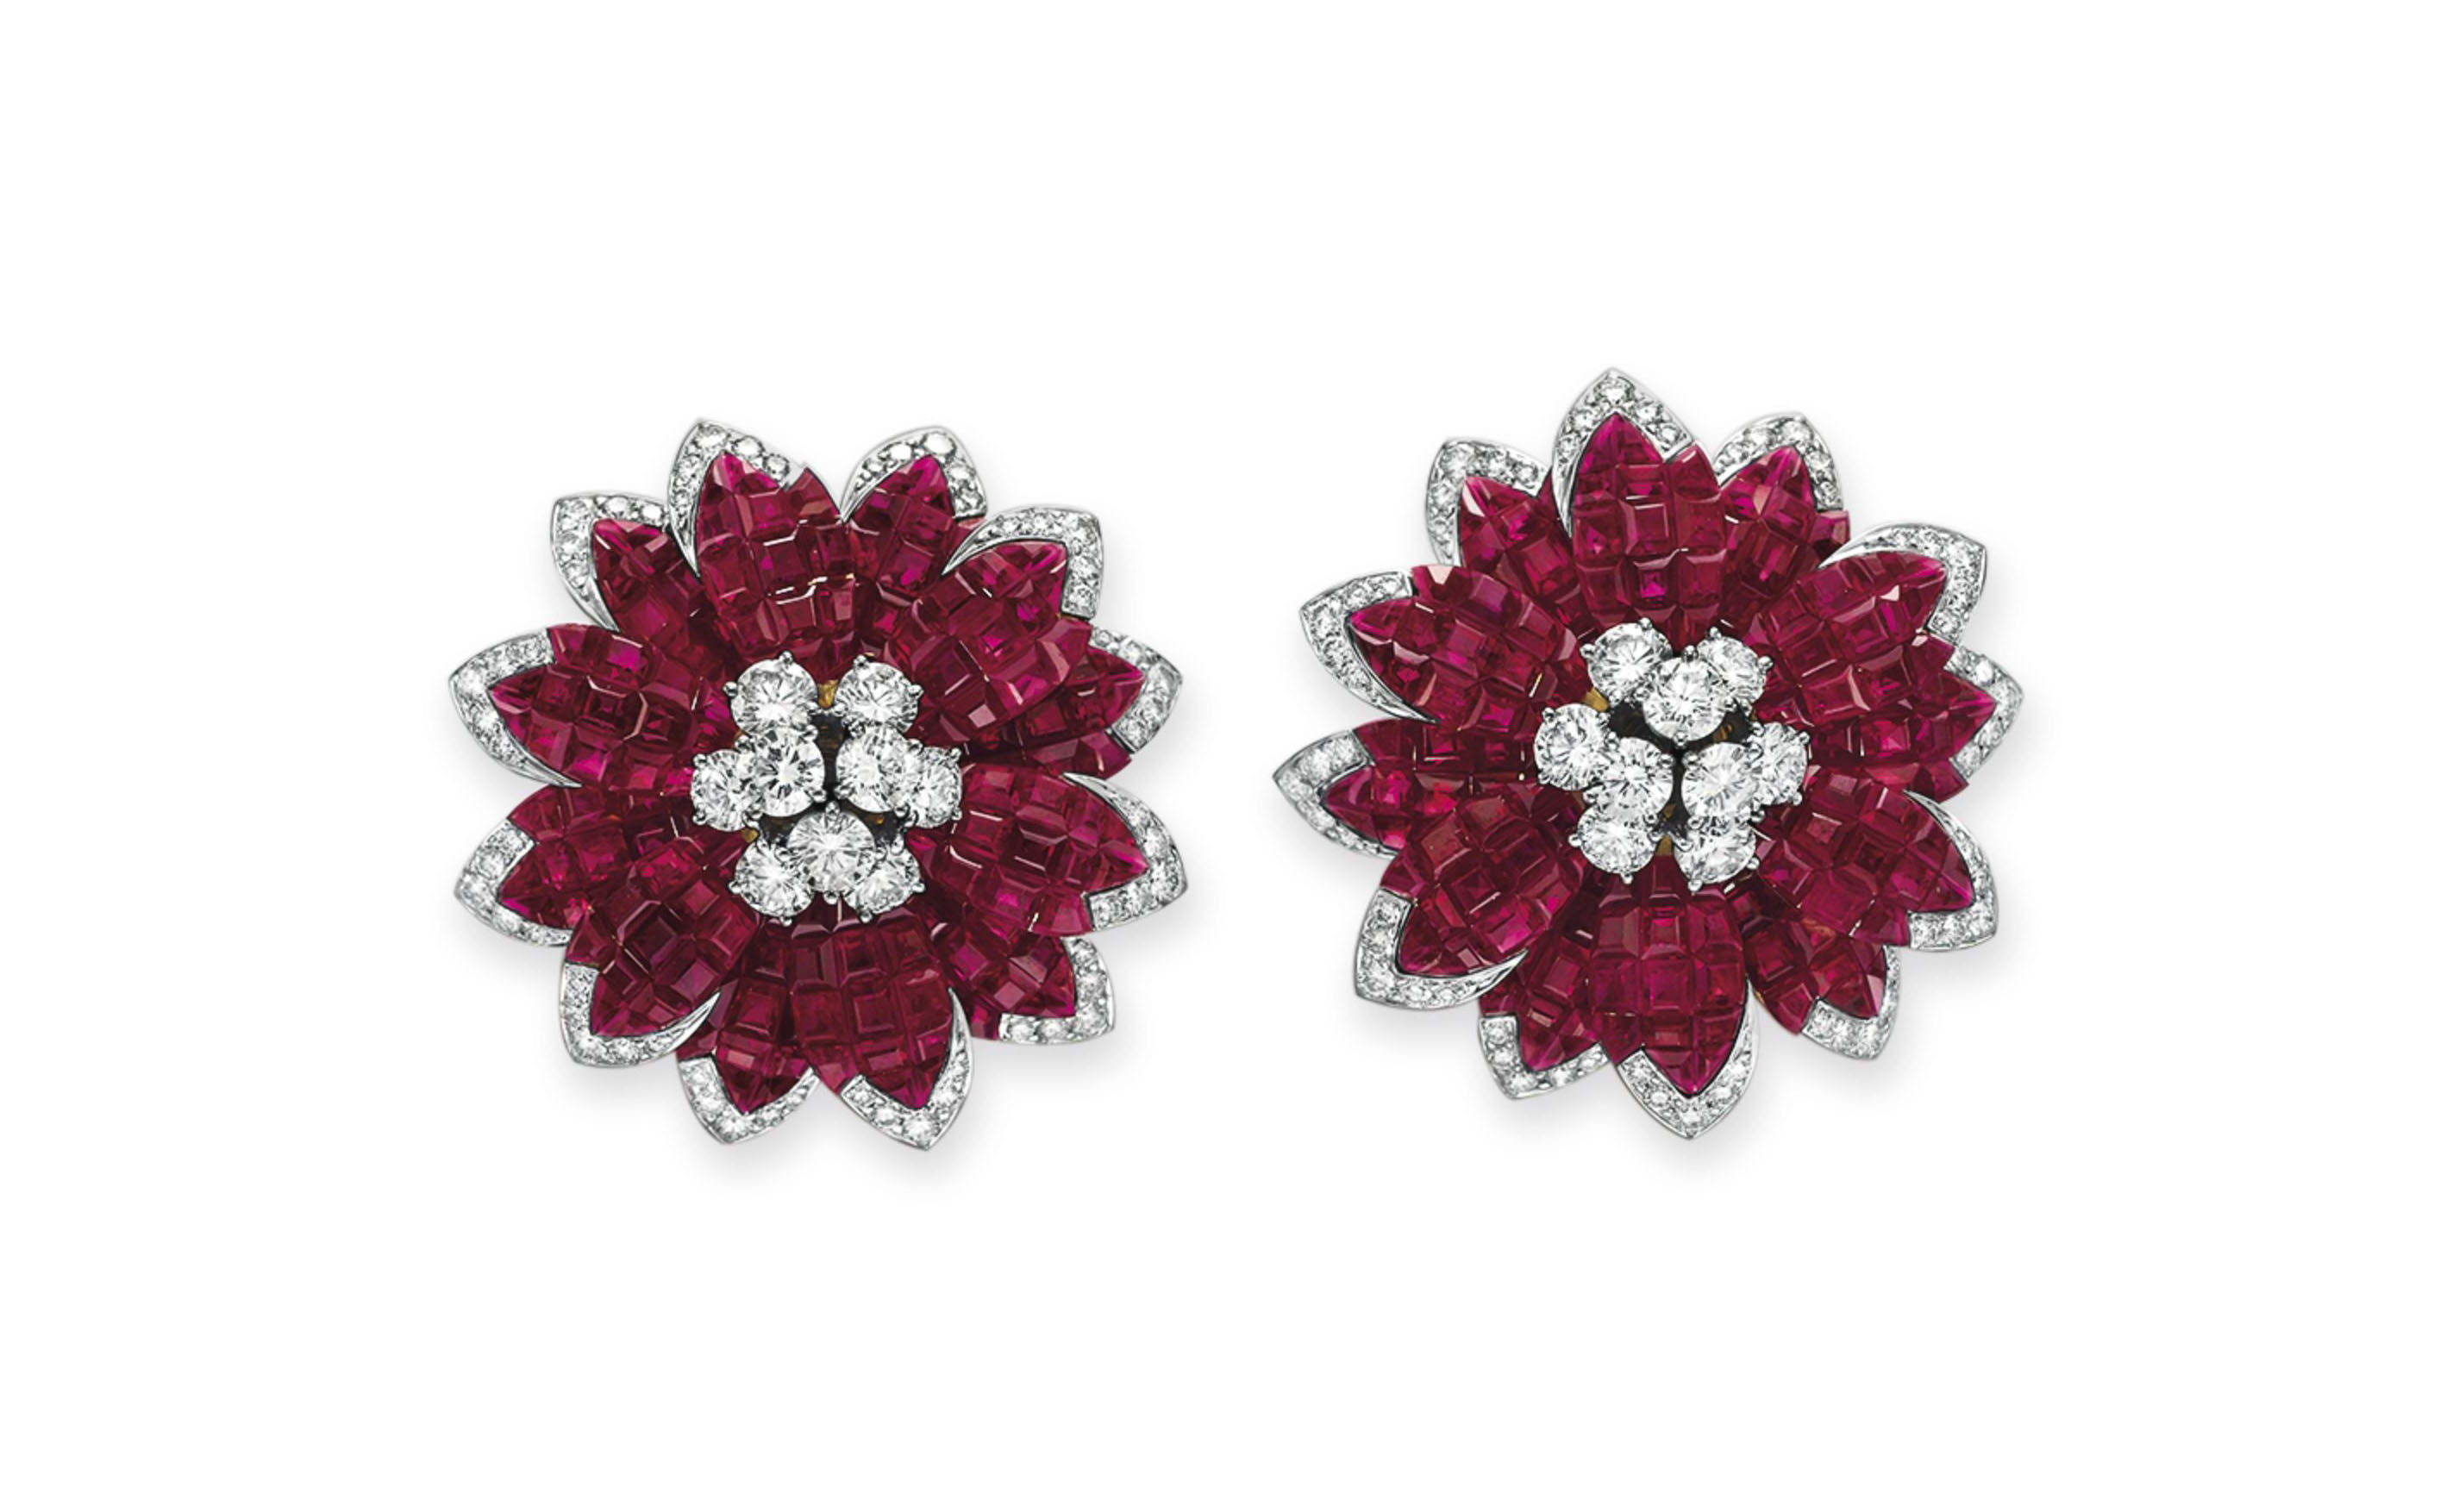 A PAIR OF RUBY AND DIAMOND FLOWER EAR CLIPS, BY ALETTO BROTHERS